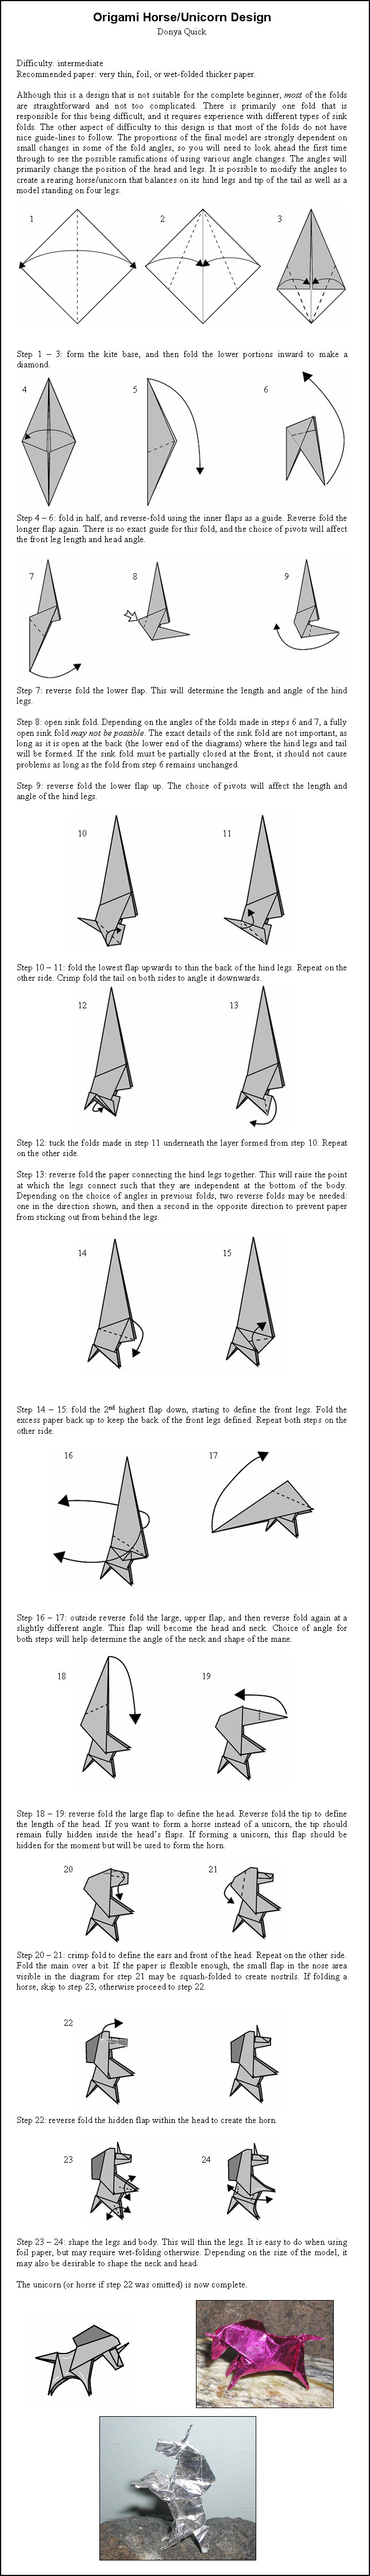 Origami Unicorn Tutorial - Paper Kawaii | 4481x644